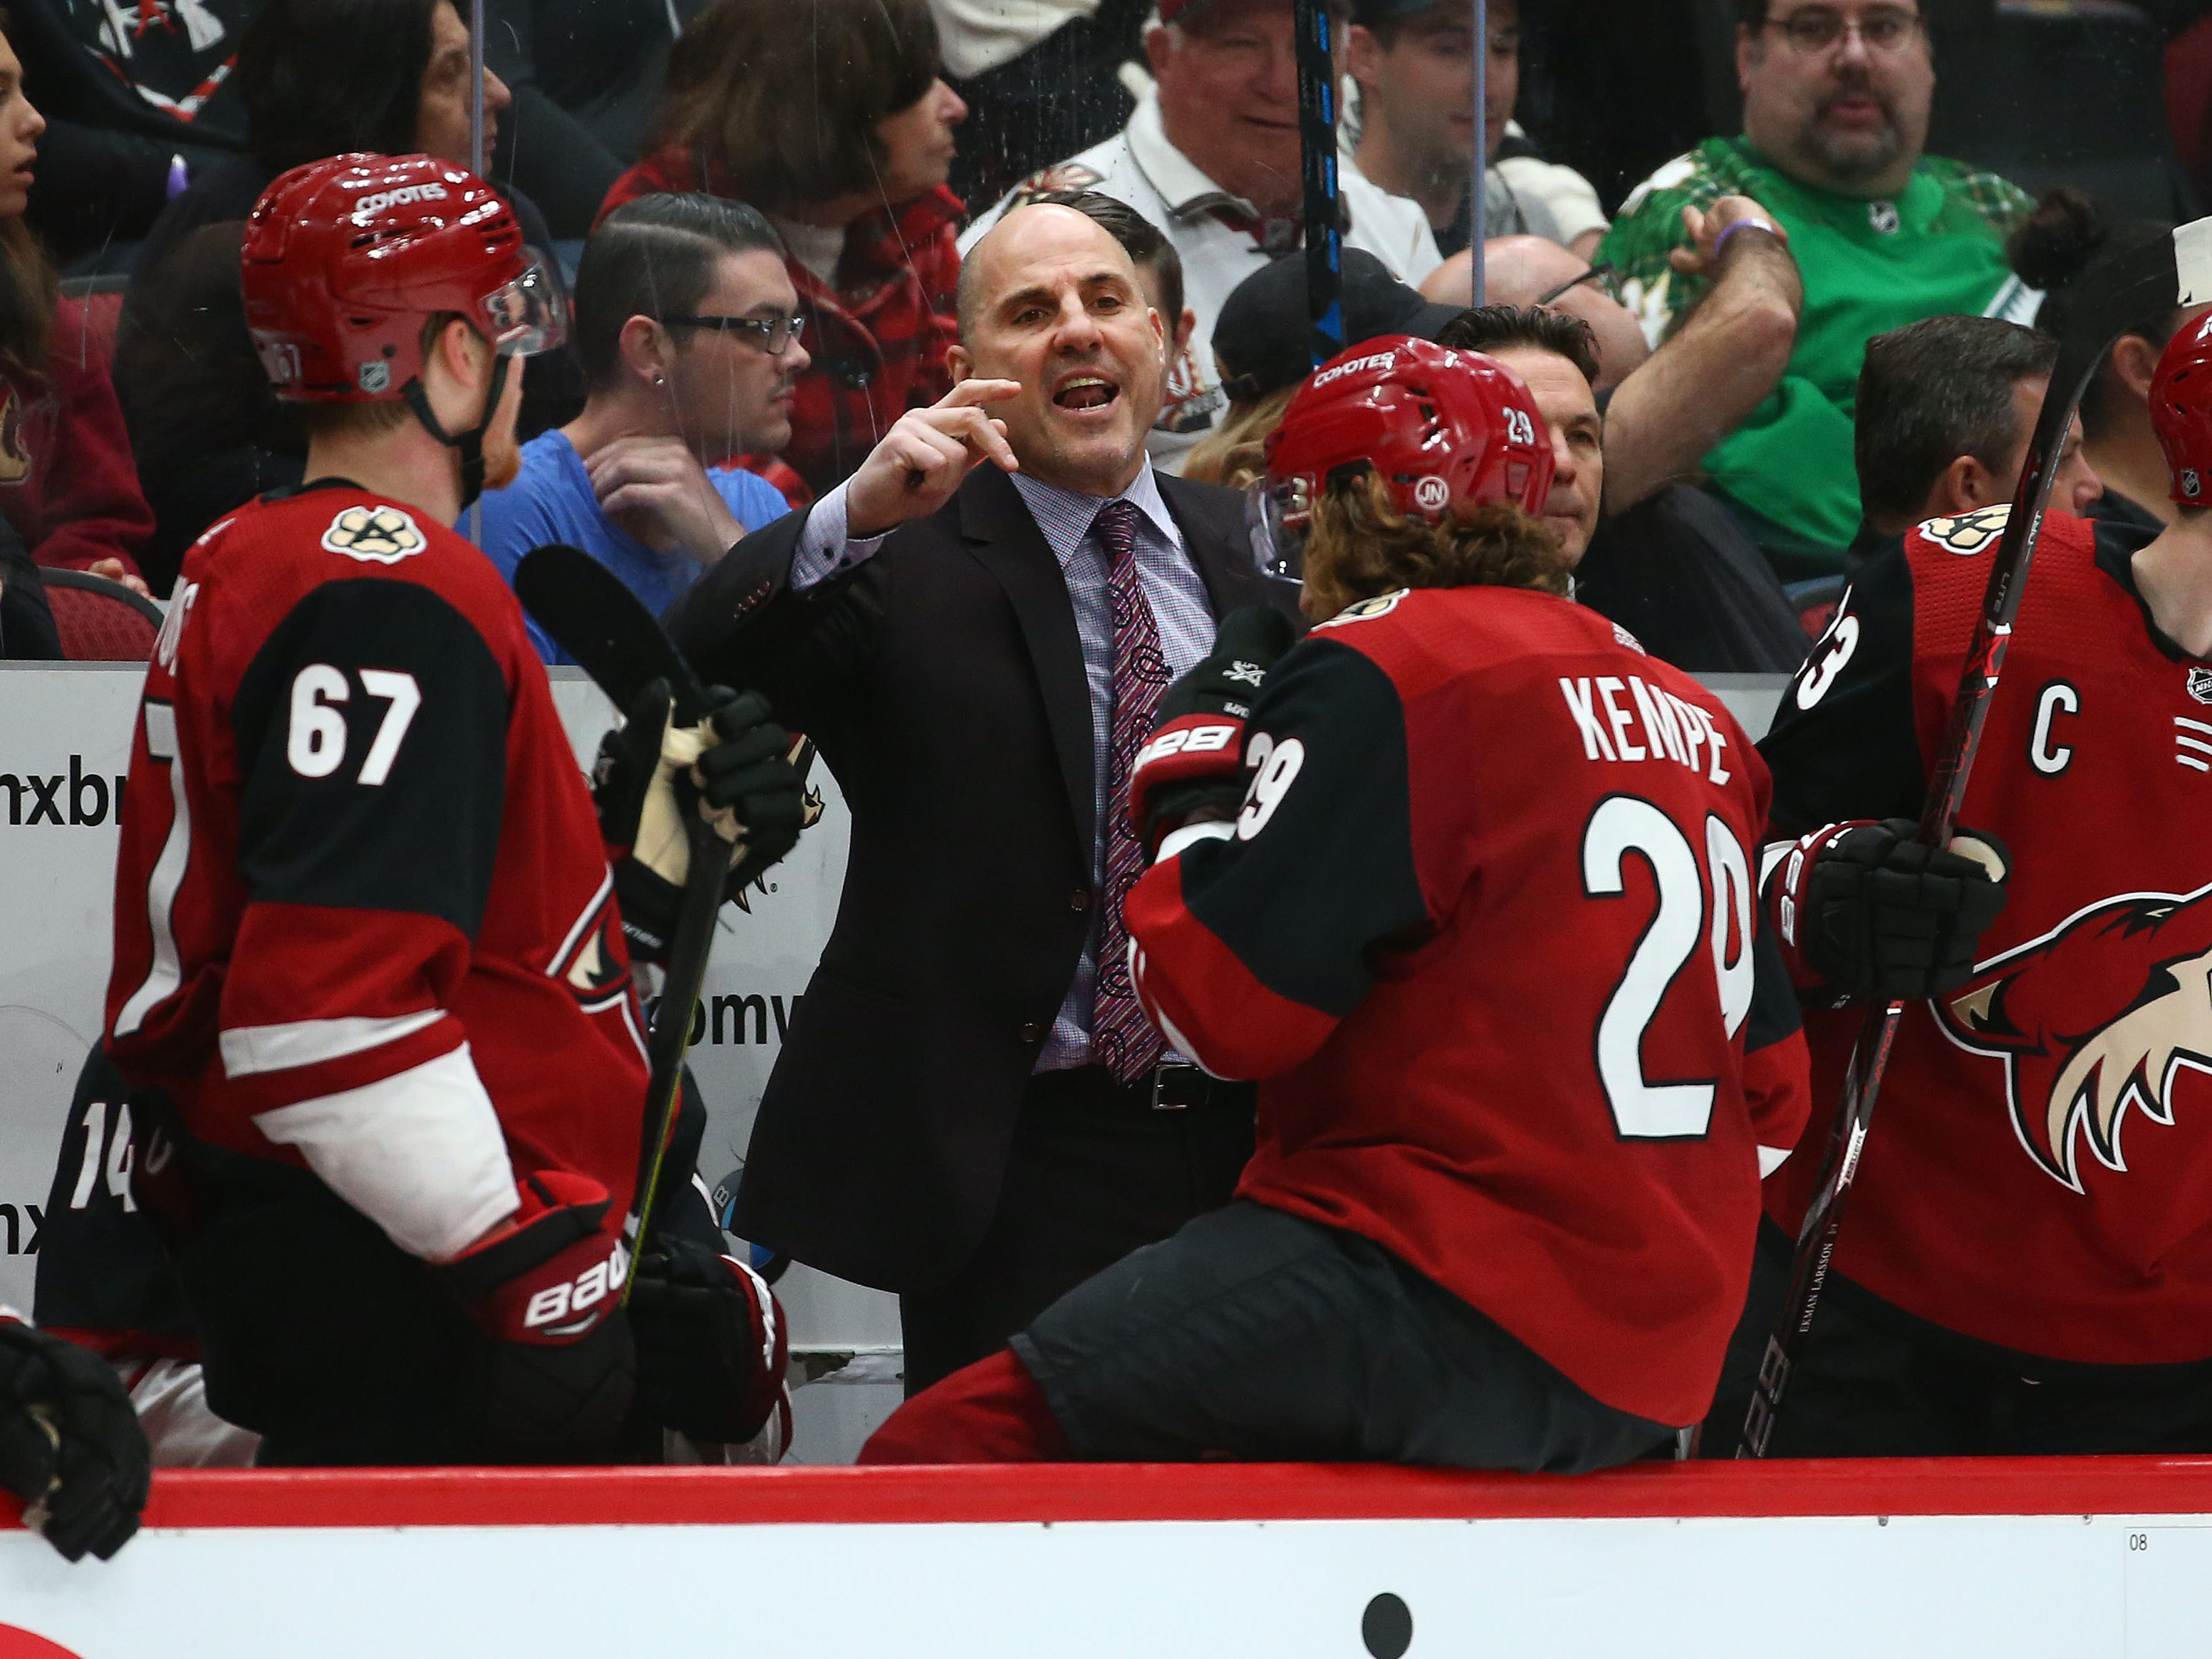 Arizona Coyotes head coach Rick Tocchet reacts against the Anaheim Ducks in the second period on Mar. 5, 2019, at Gila River Arena in Glendale, Ariz.